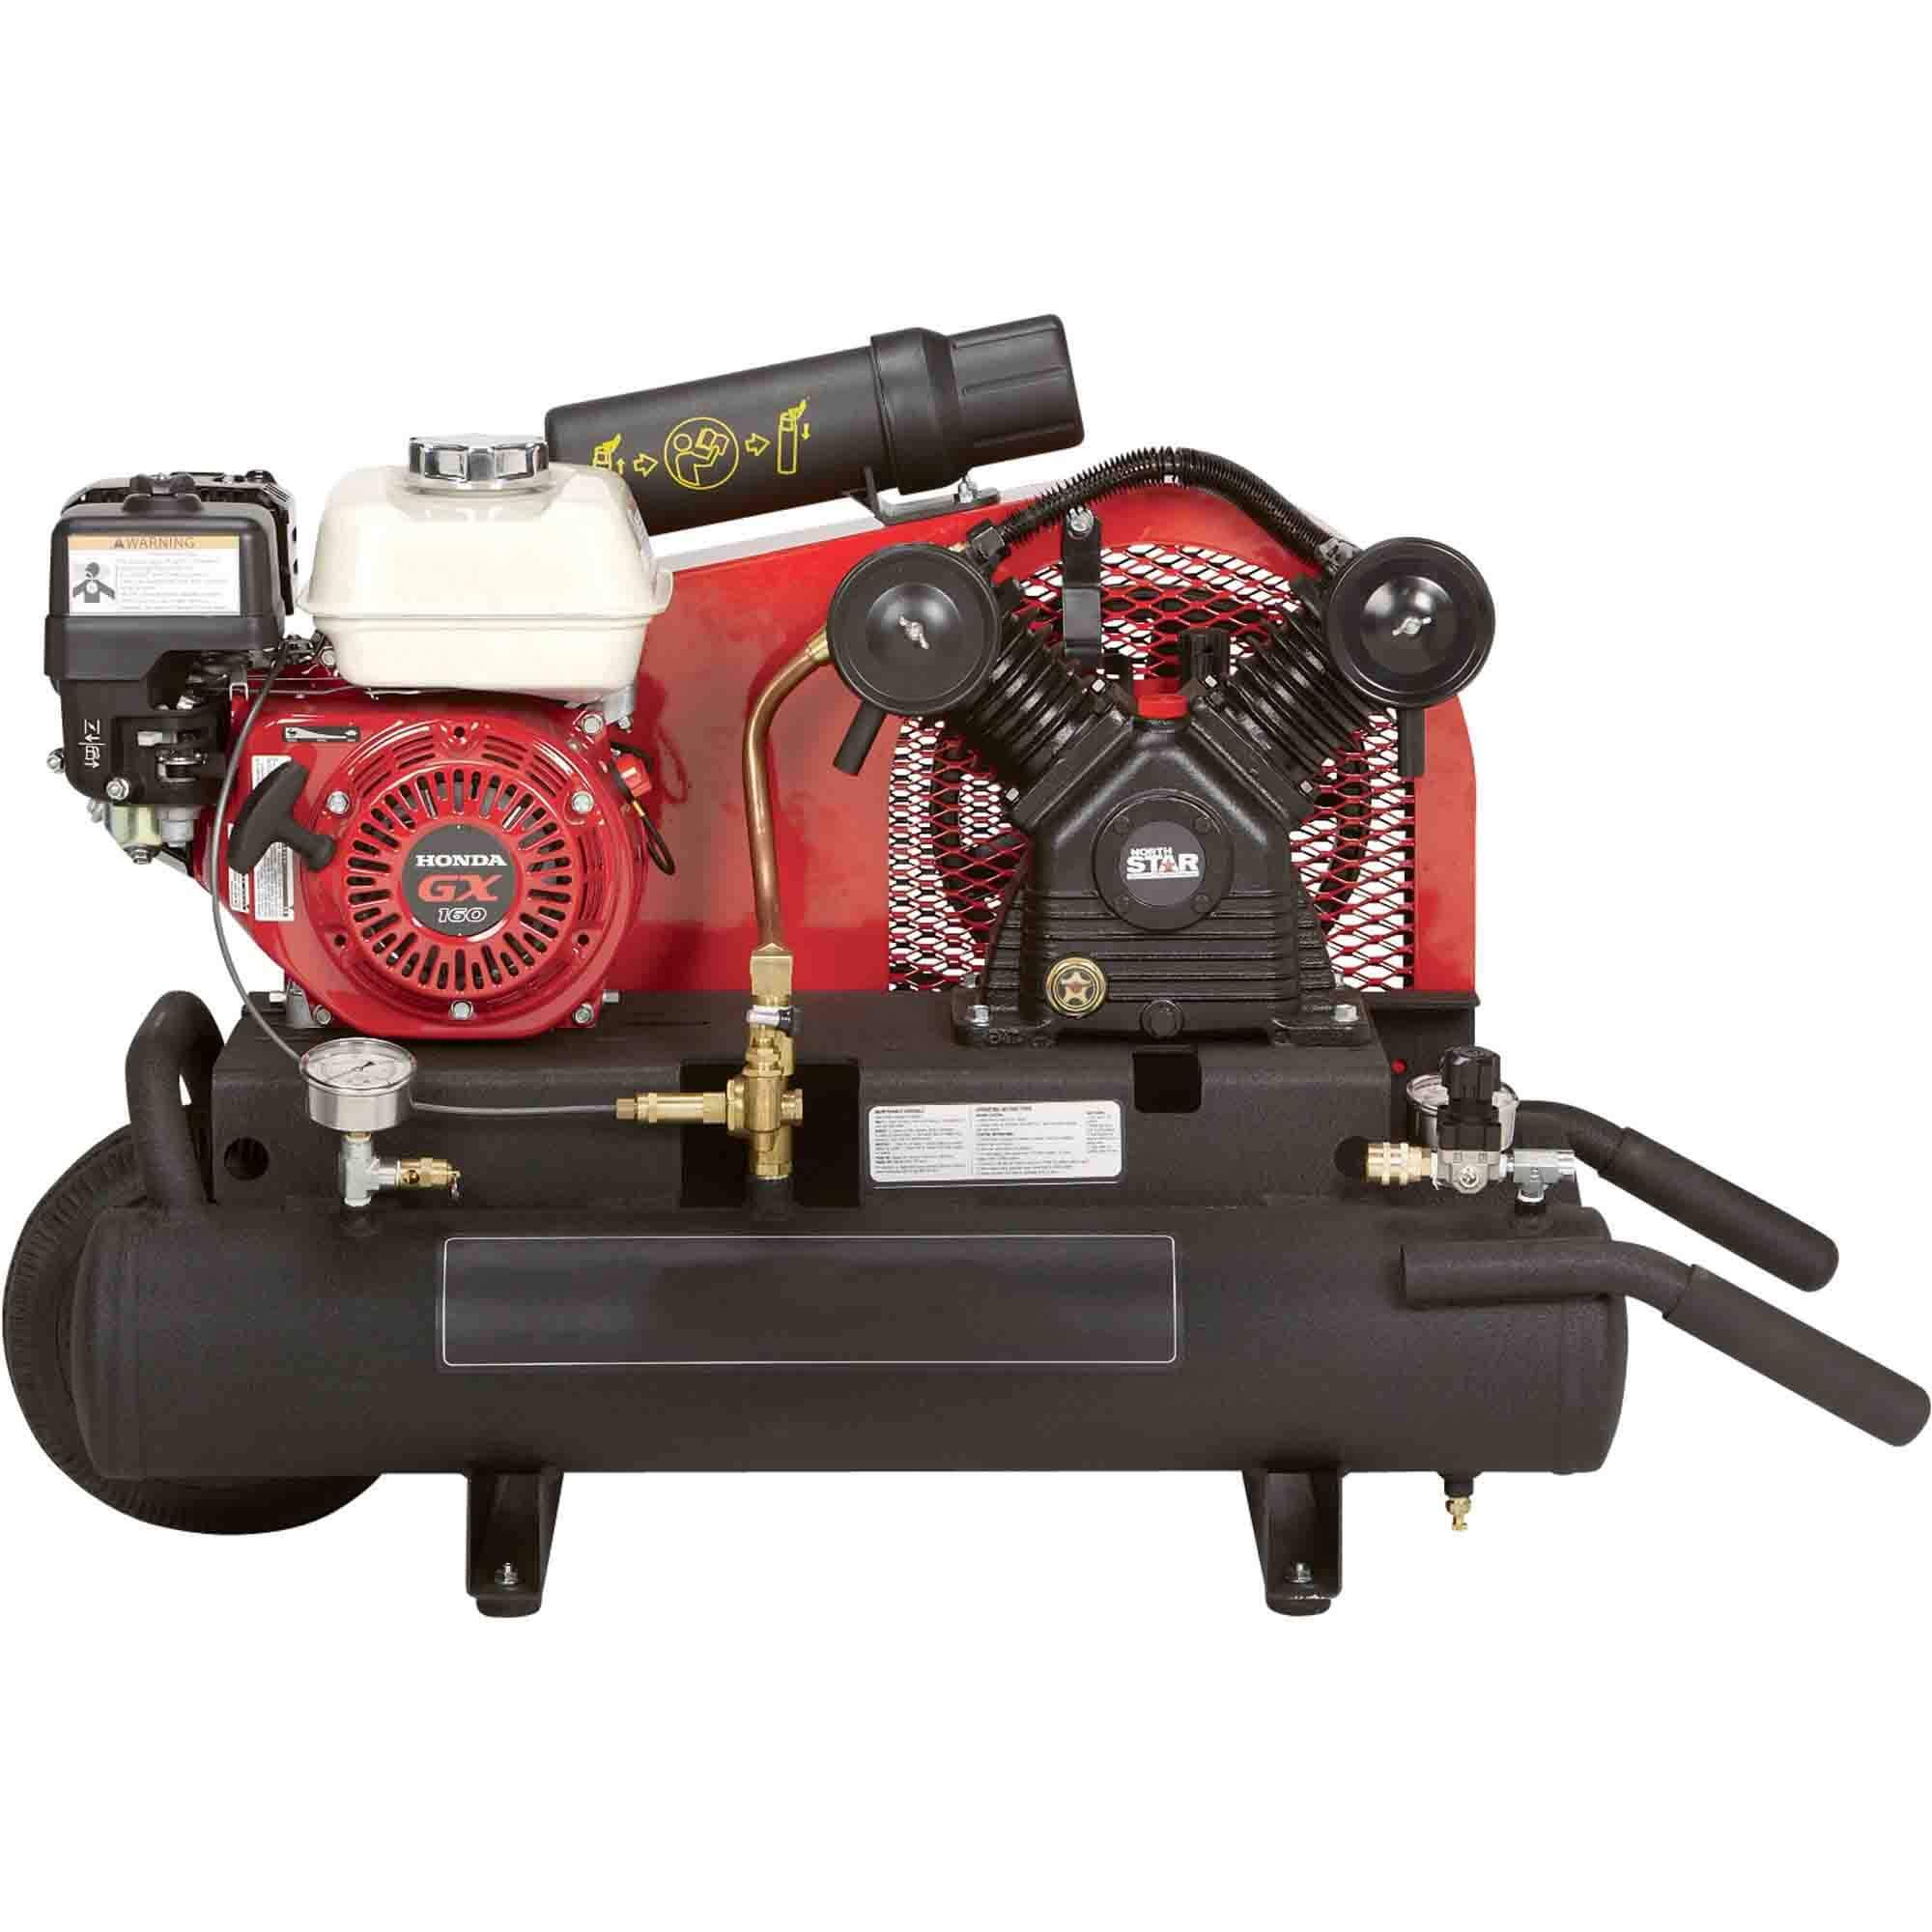 Arlington Rental Company provides air compressor, CFM